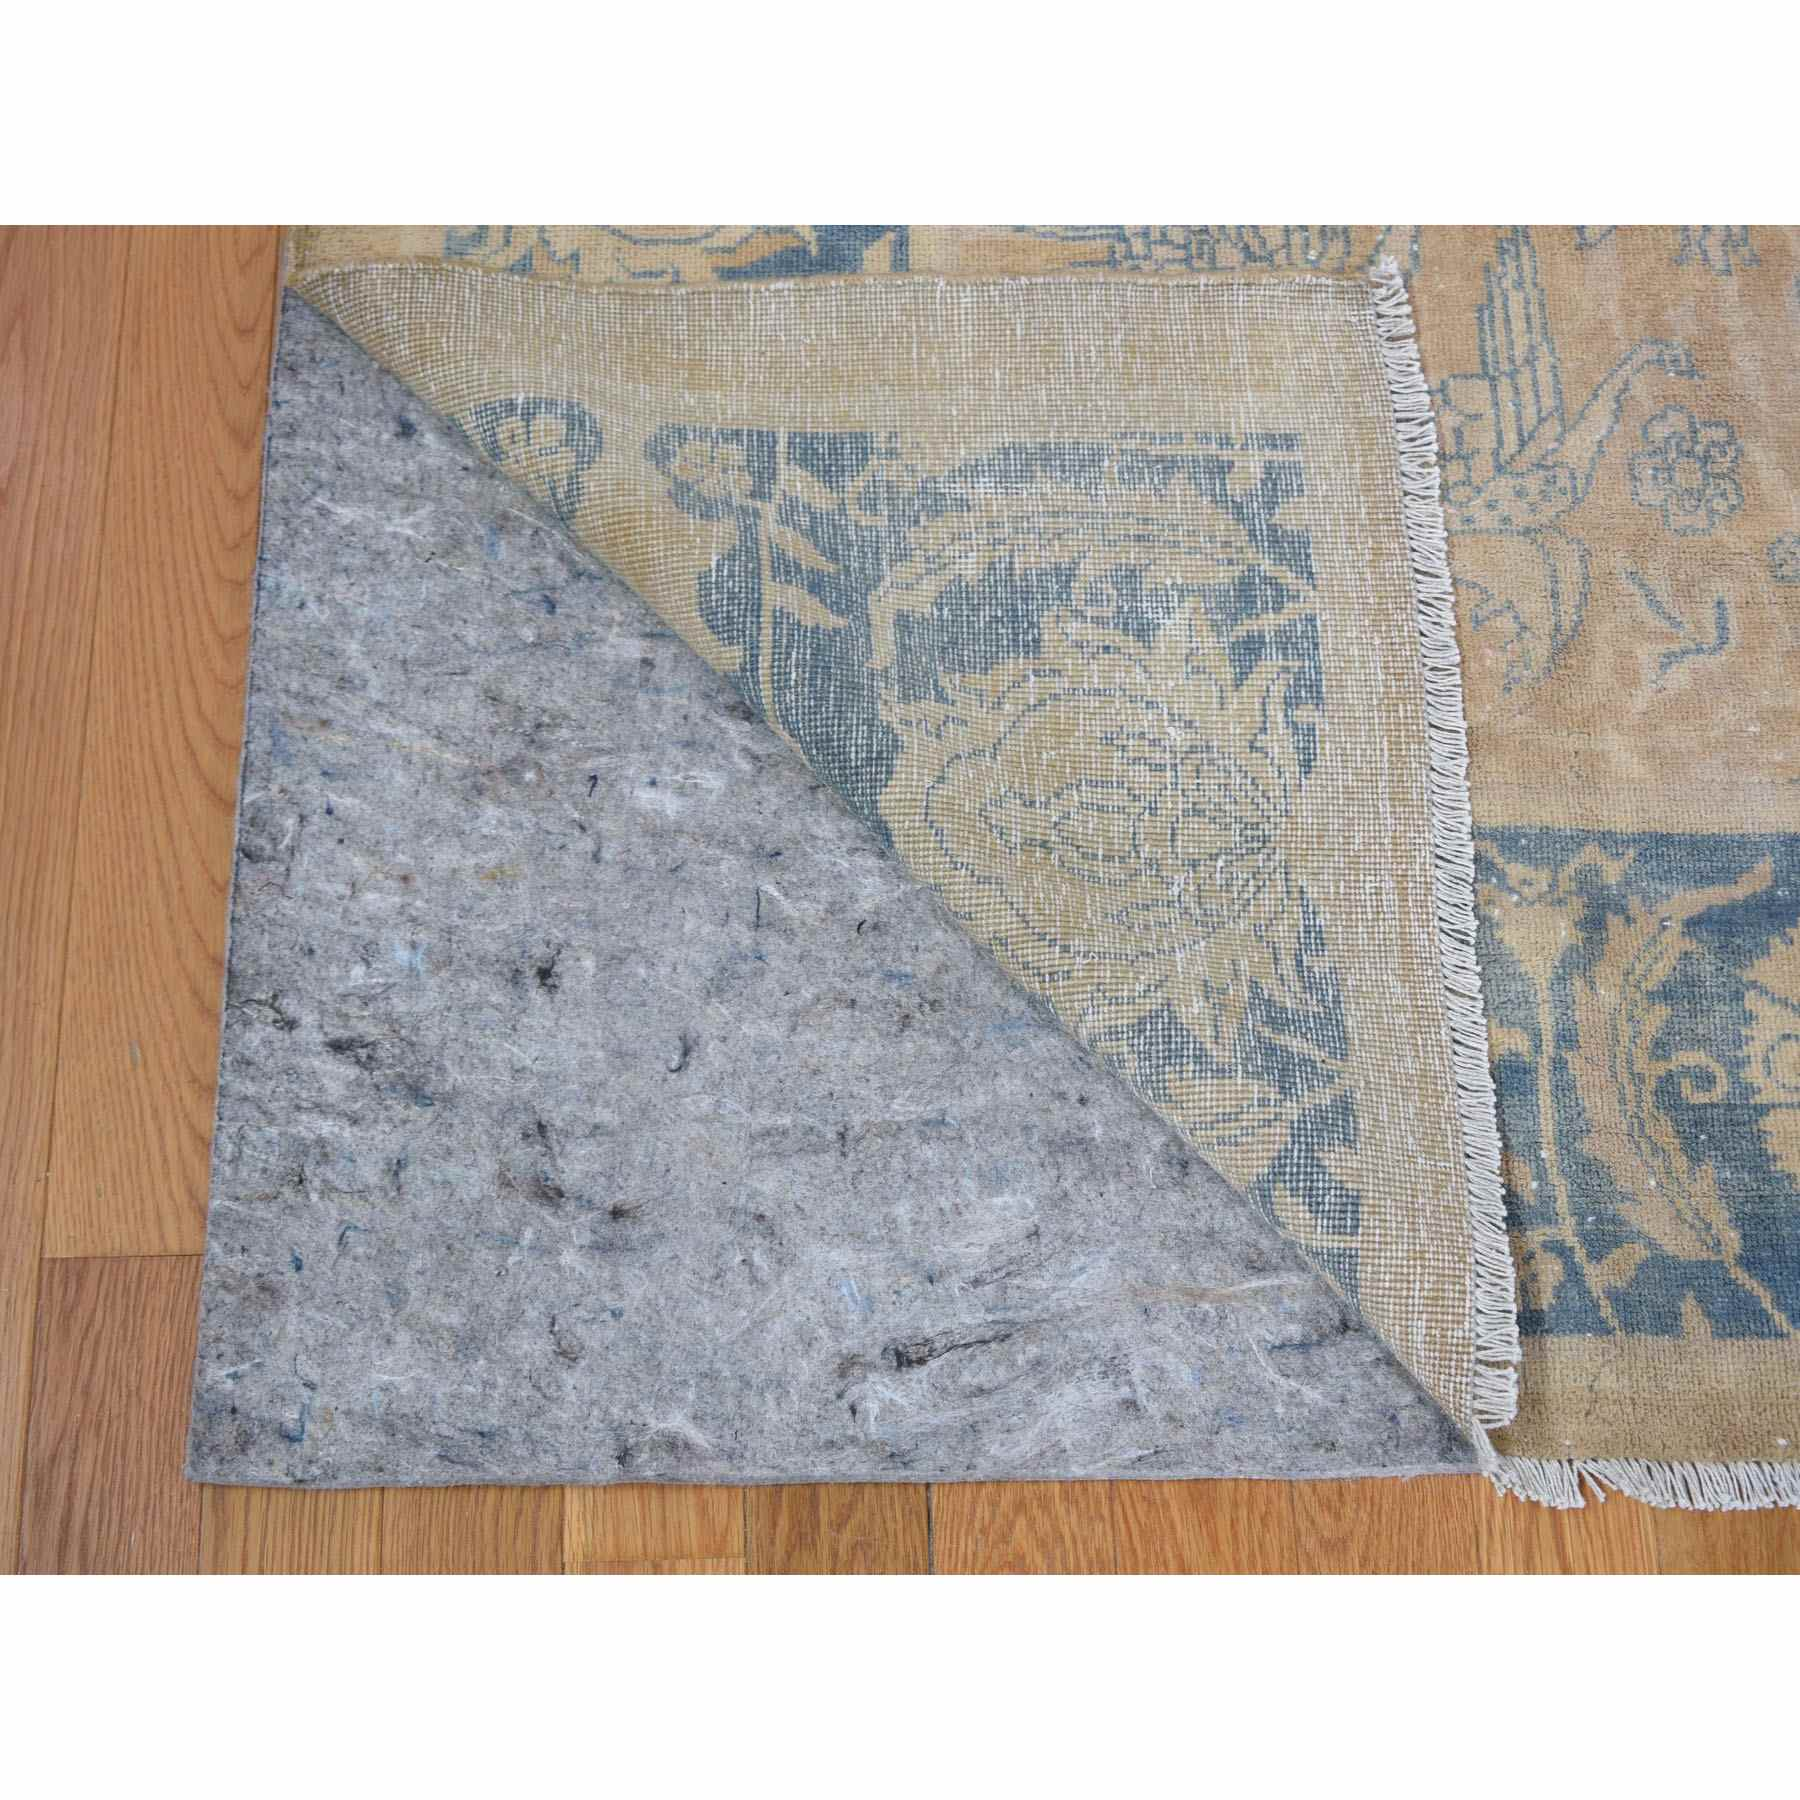 Antique-Hand-Knotted-Rug-295485